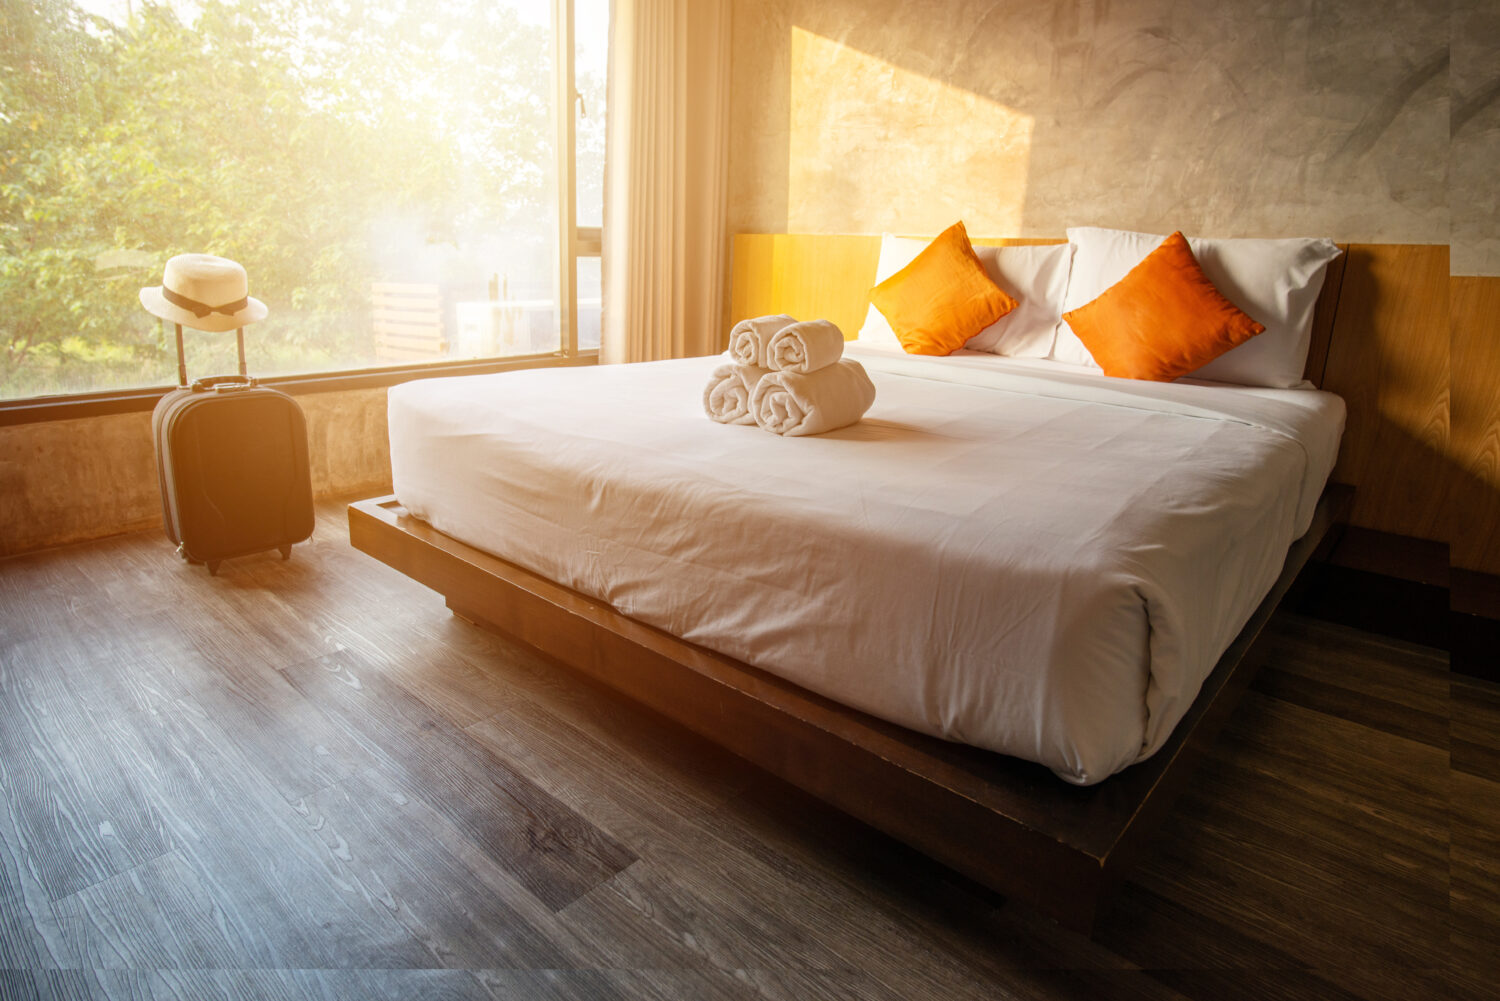 a double bed with four pillows, two of which are orange